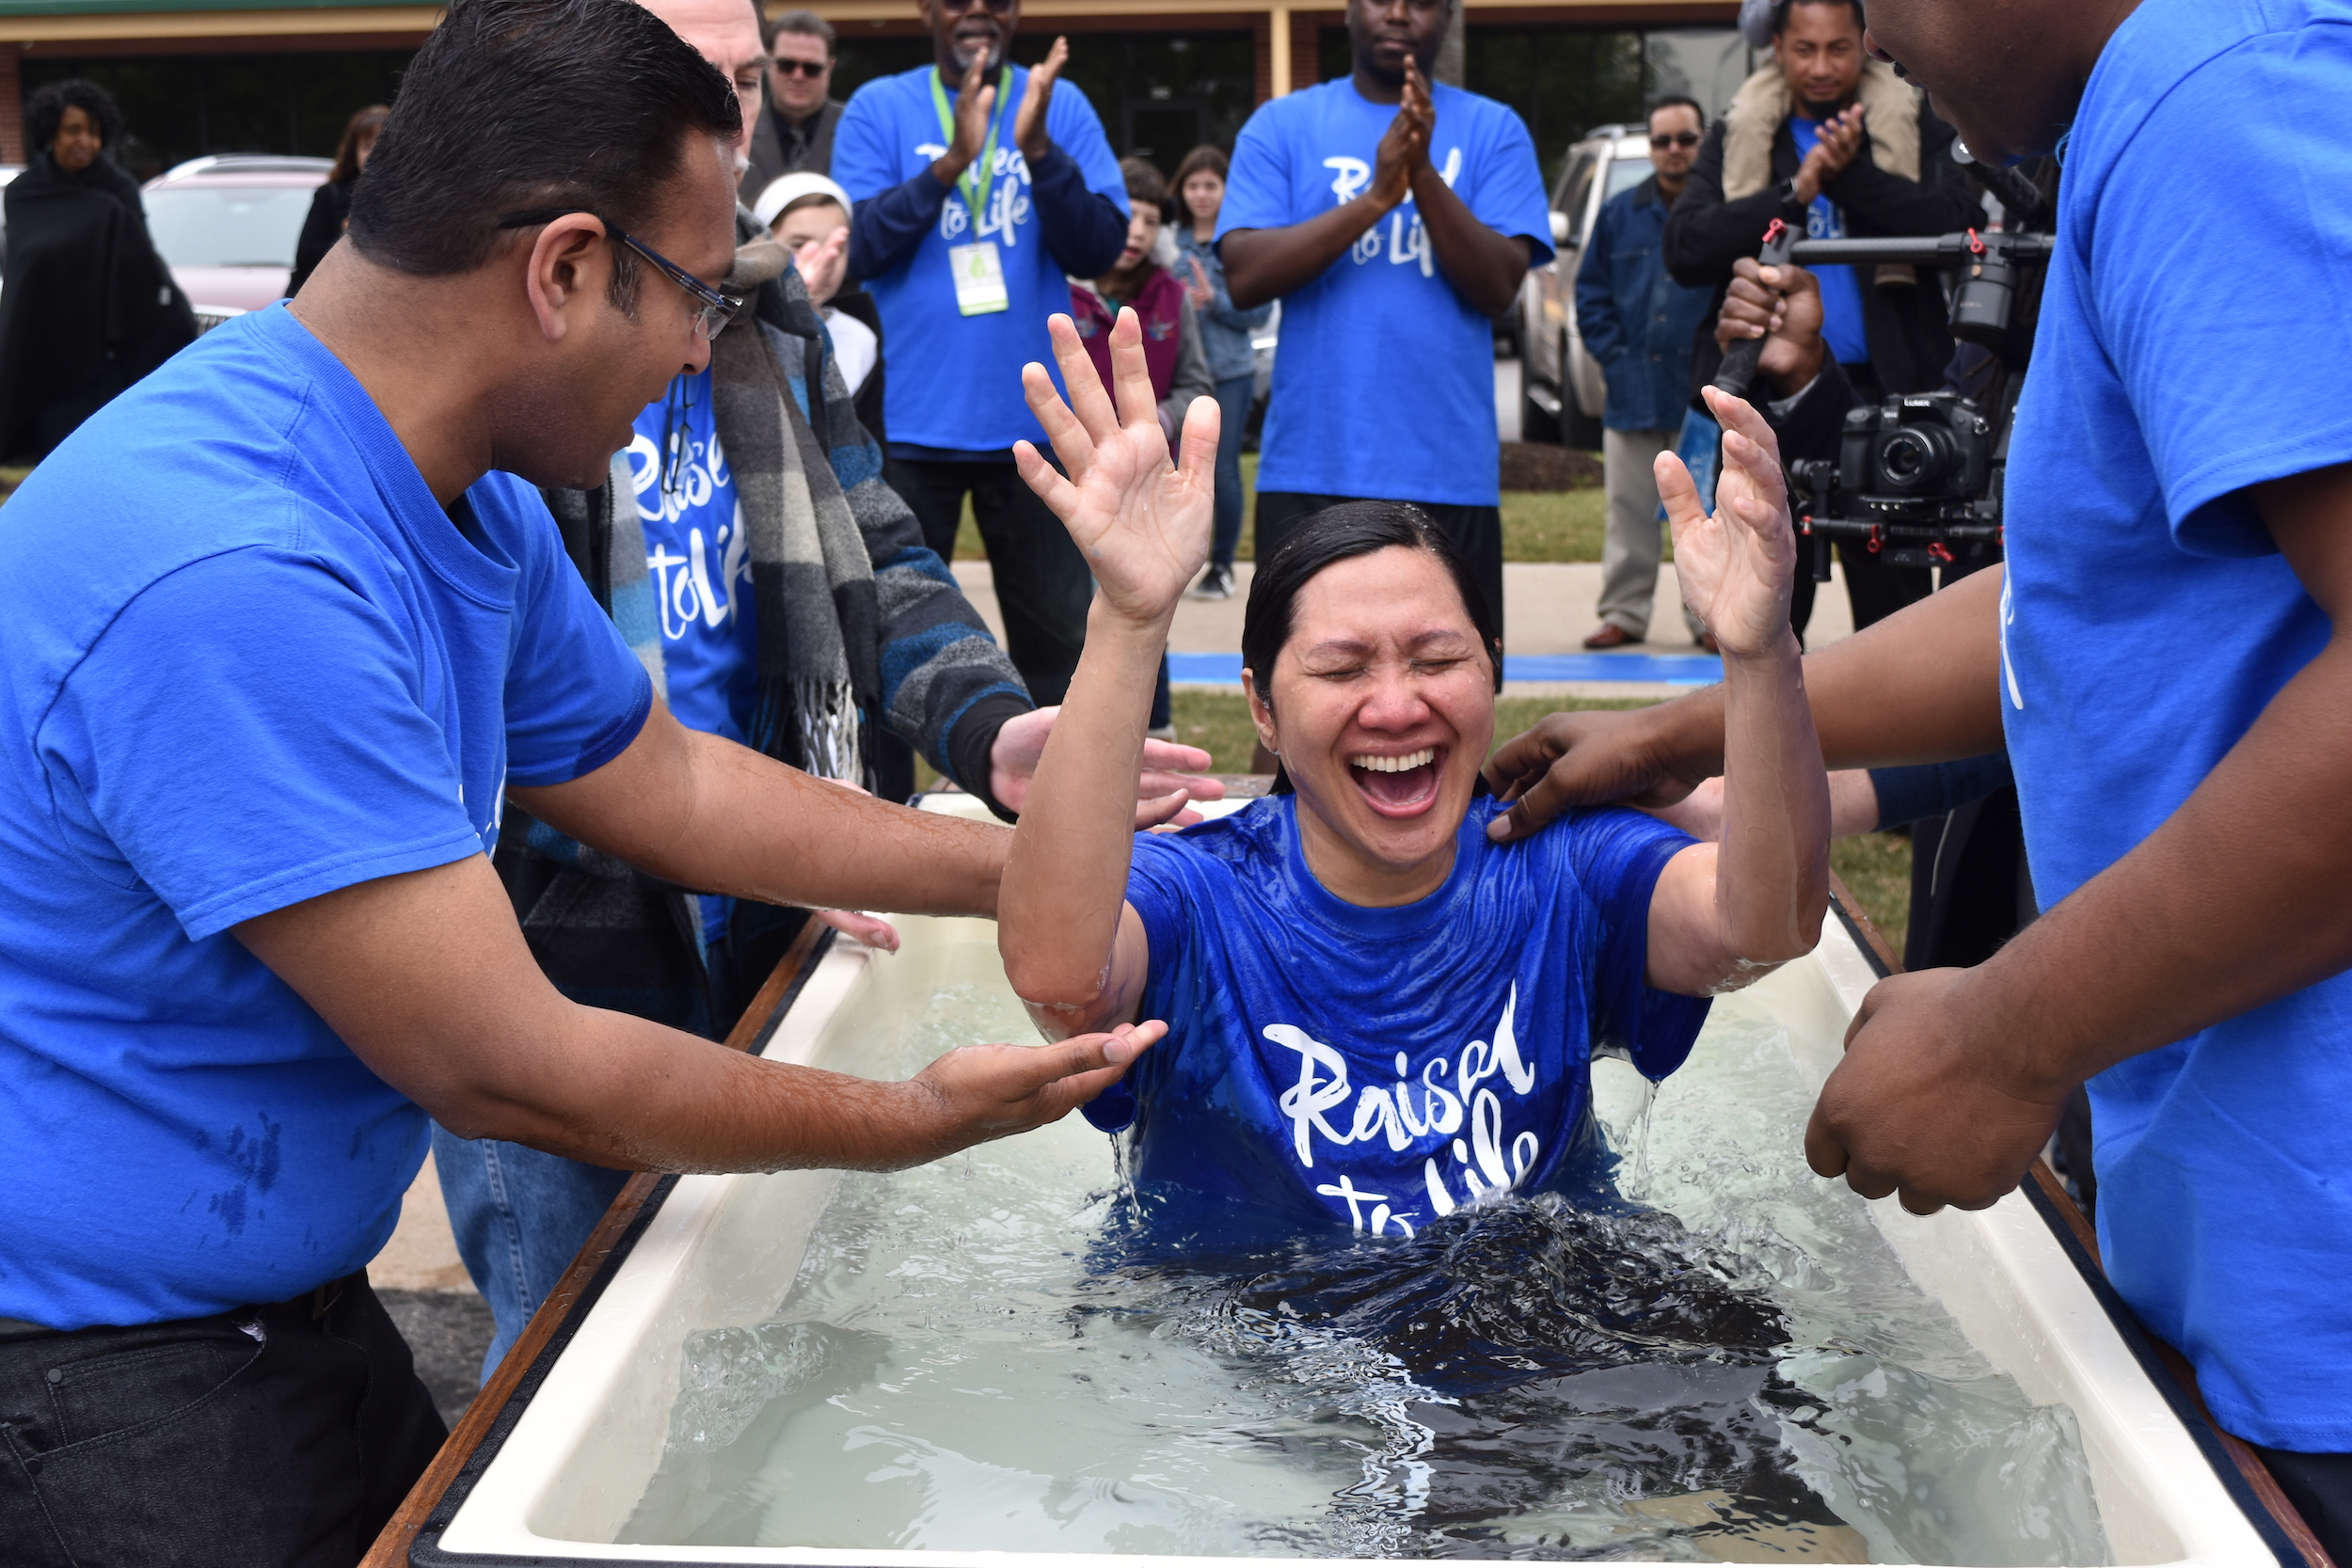 Baptism - Discover new life in Jesus Christ, as your sins are washed away in water baptism.